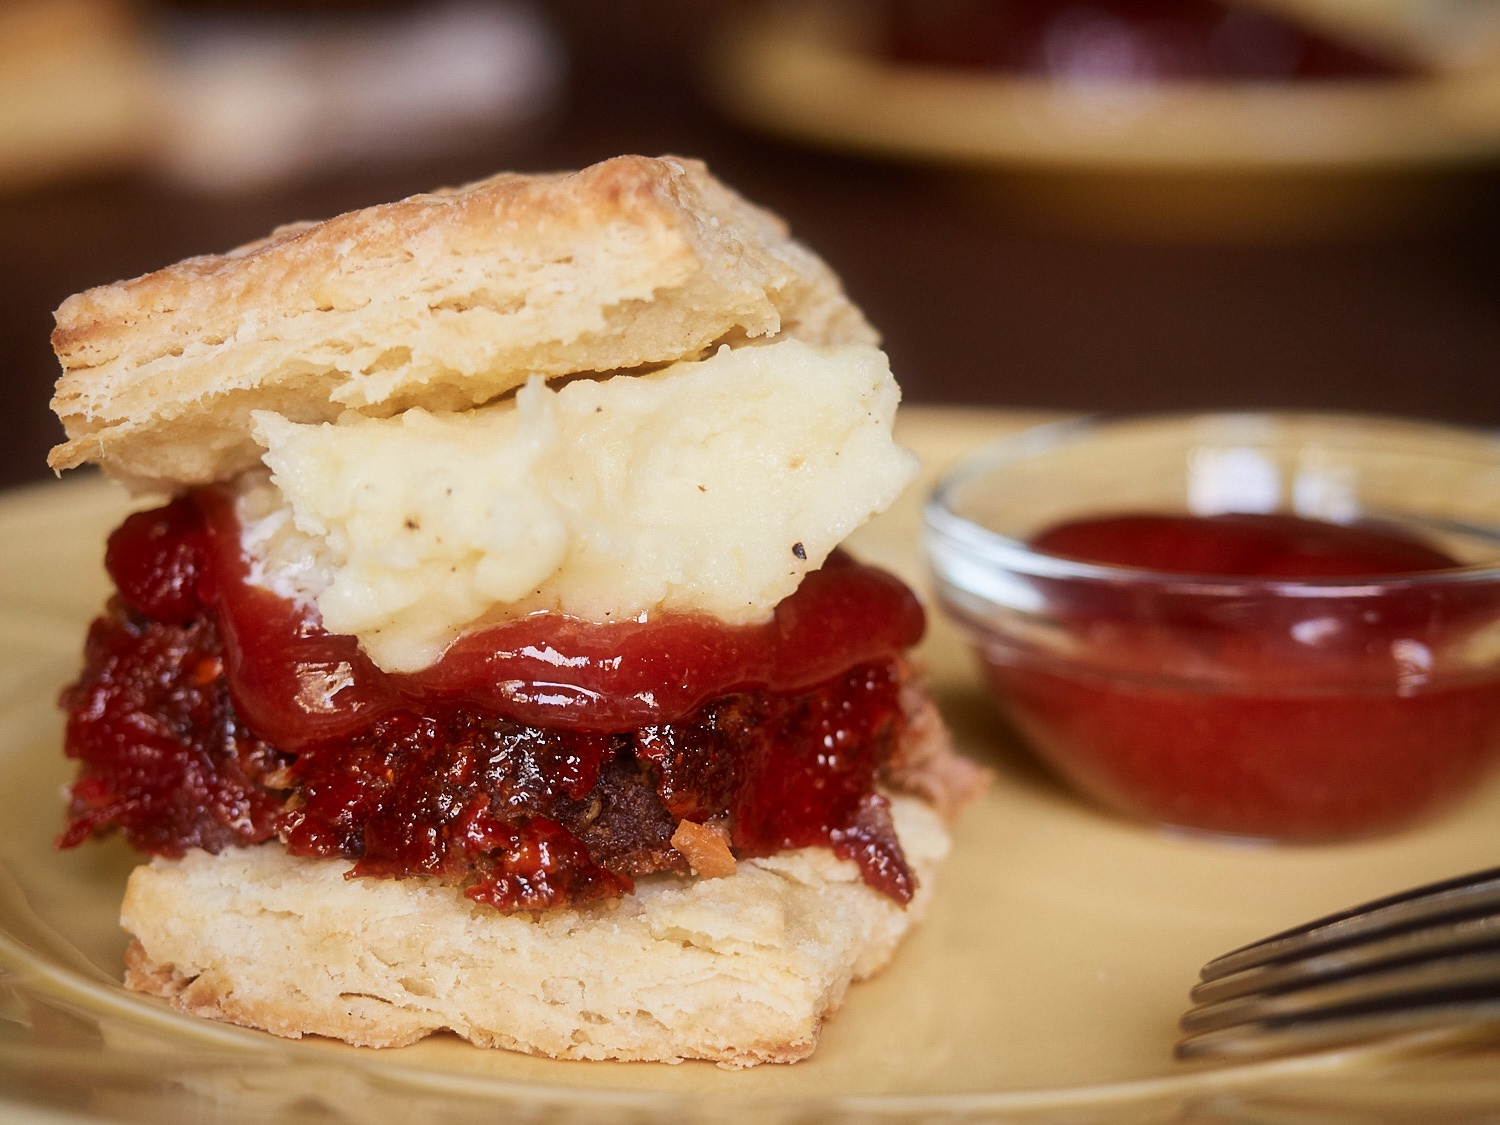 Meatloaf and mashed potato on a biscuit - YUM